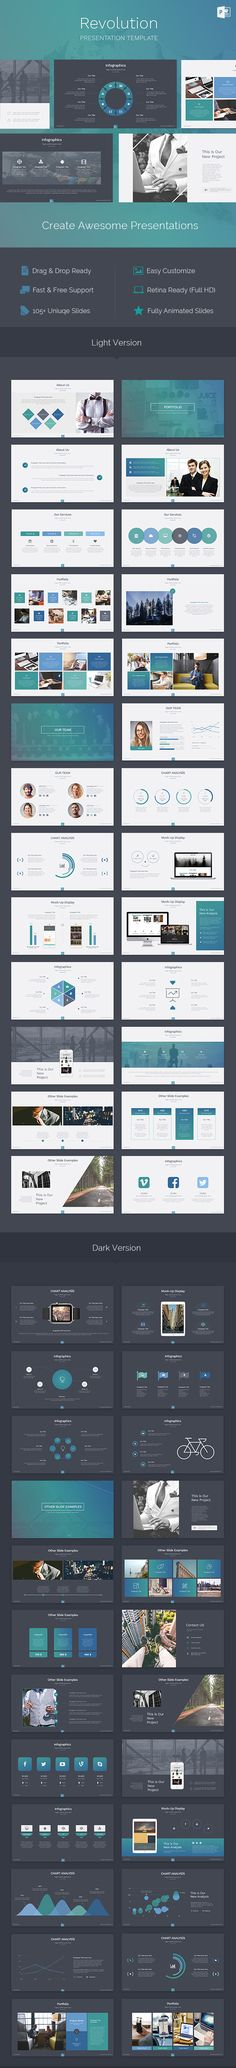 Revolution - Creative Powerpoint Template